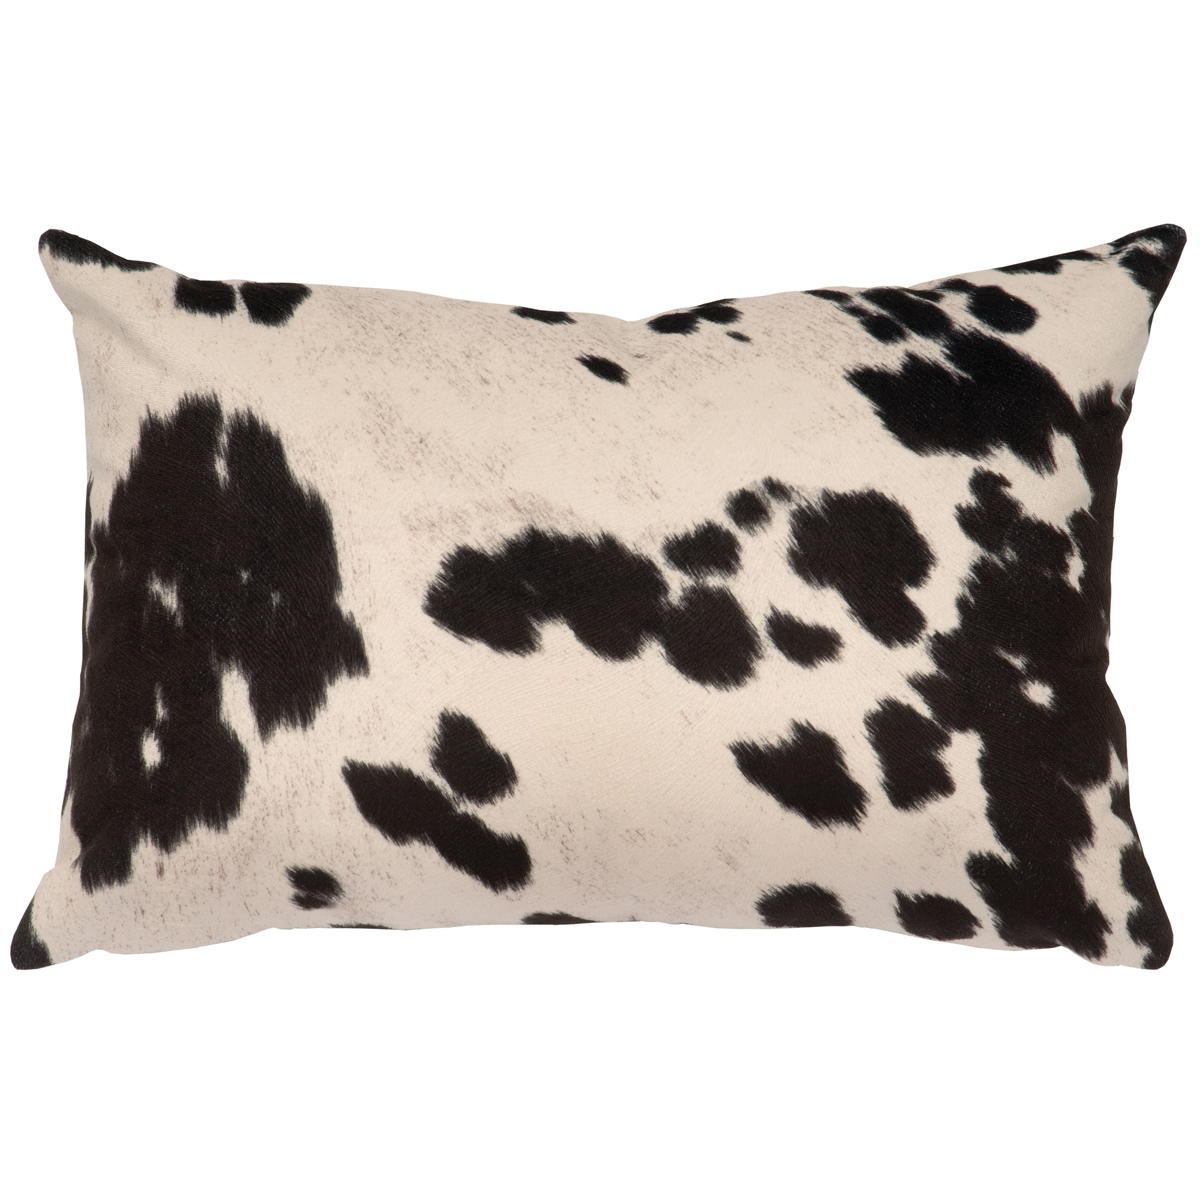 Black Forest Decor Udder domino rectangle pillow